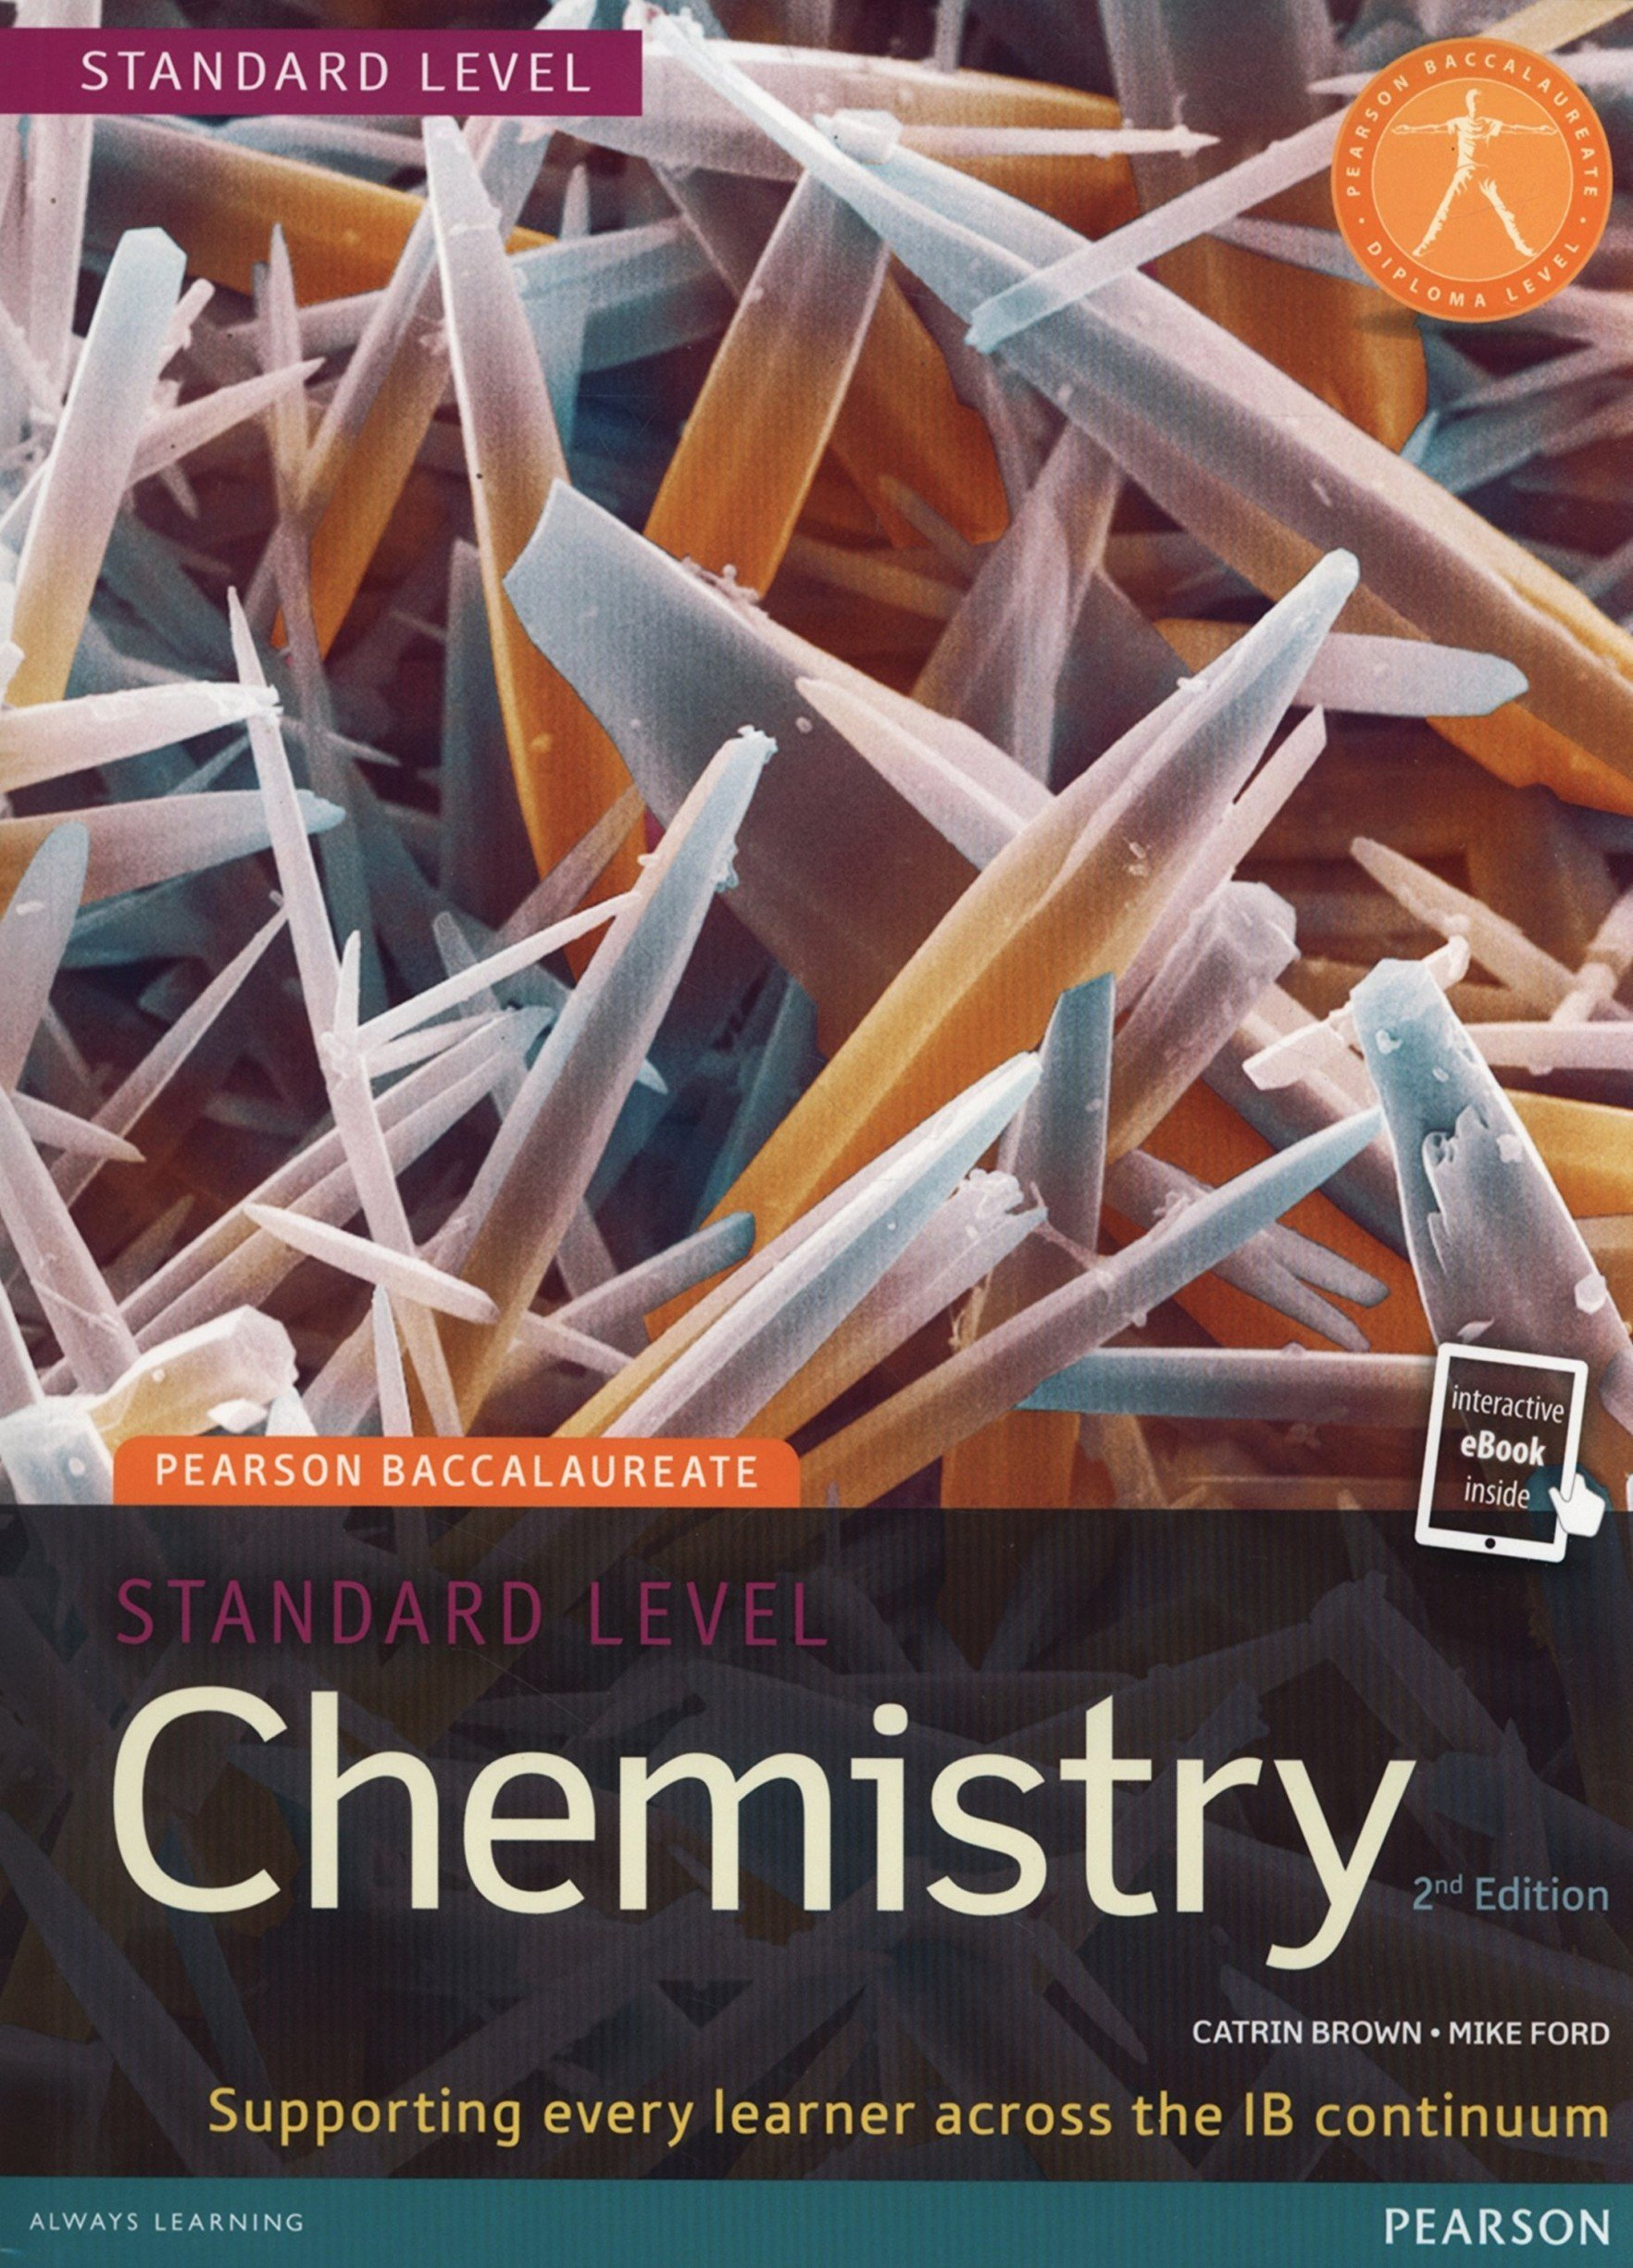 Pearson baccalaureate chemistry standard level 2nd edition print and pearson baccalaureate chemistry standard level 2nd edition print and ebook bundle for the ib diploma pearson international baccalaureate diploma fandeluxe Images